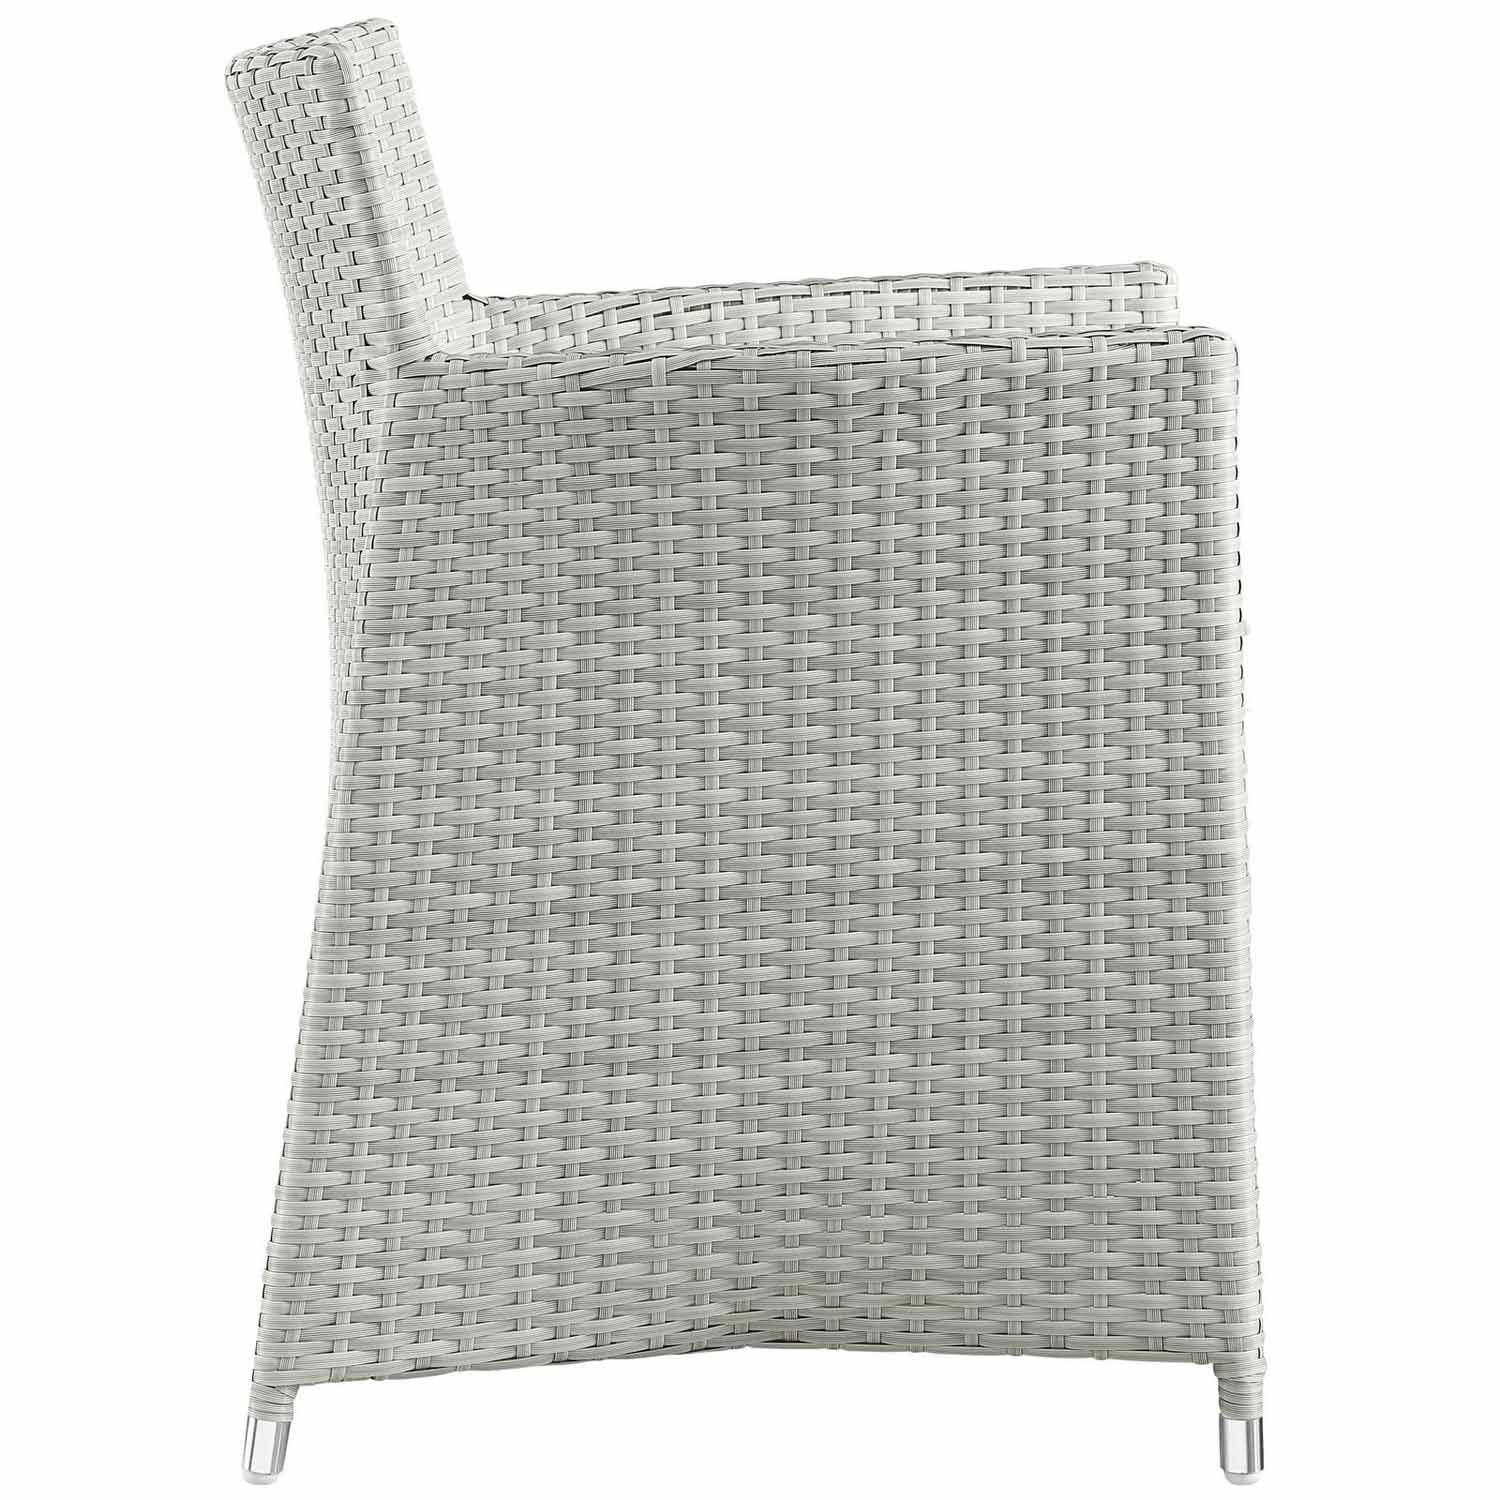 Modway Junction 3 Piece Outdoor Patio Wicker Dining Set - Gray/White